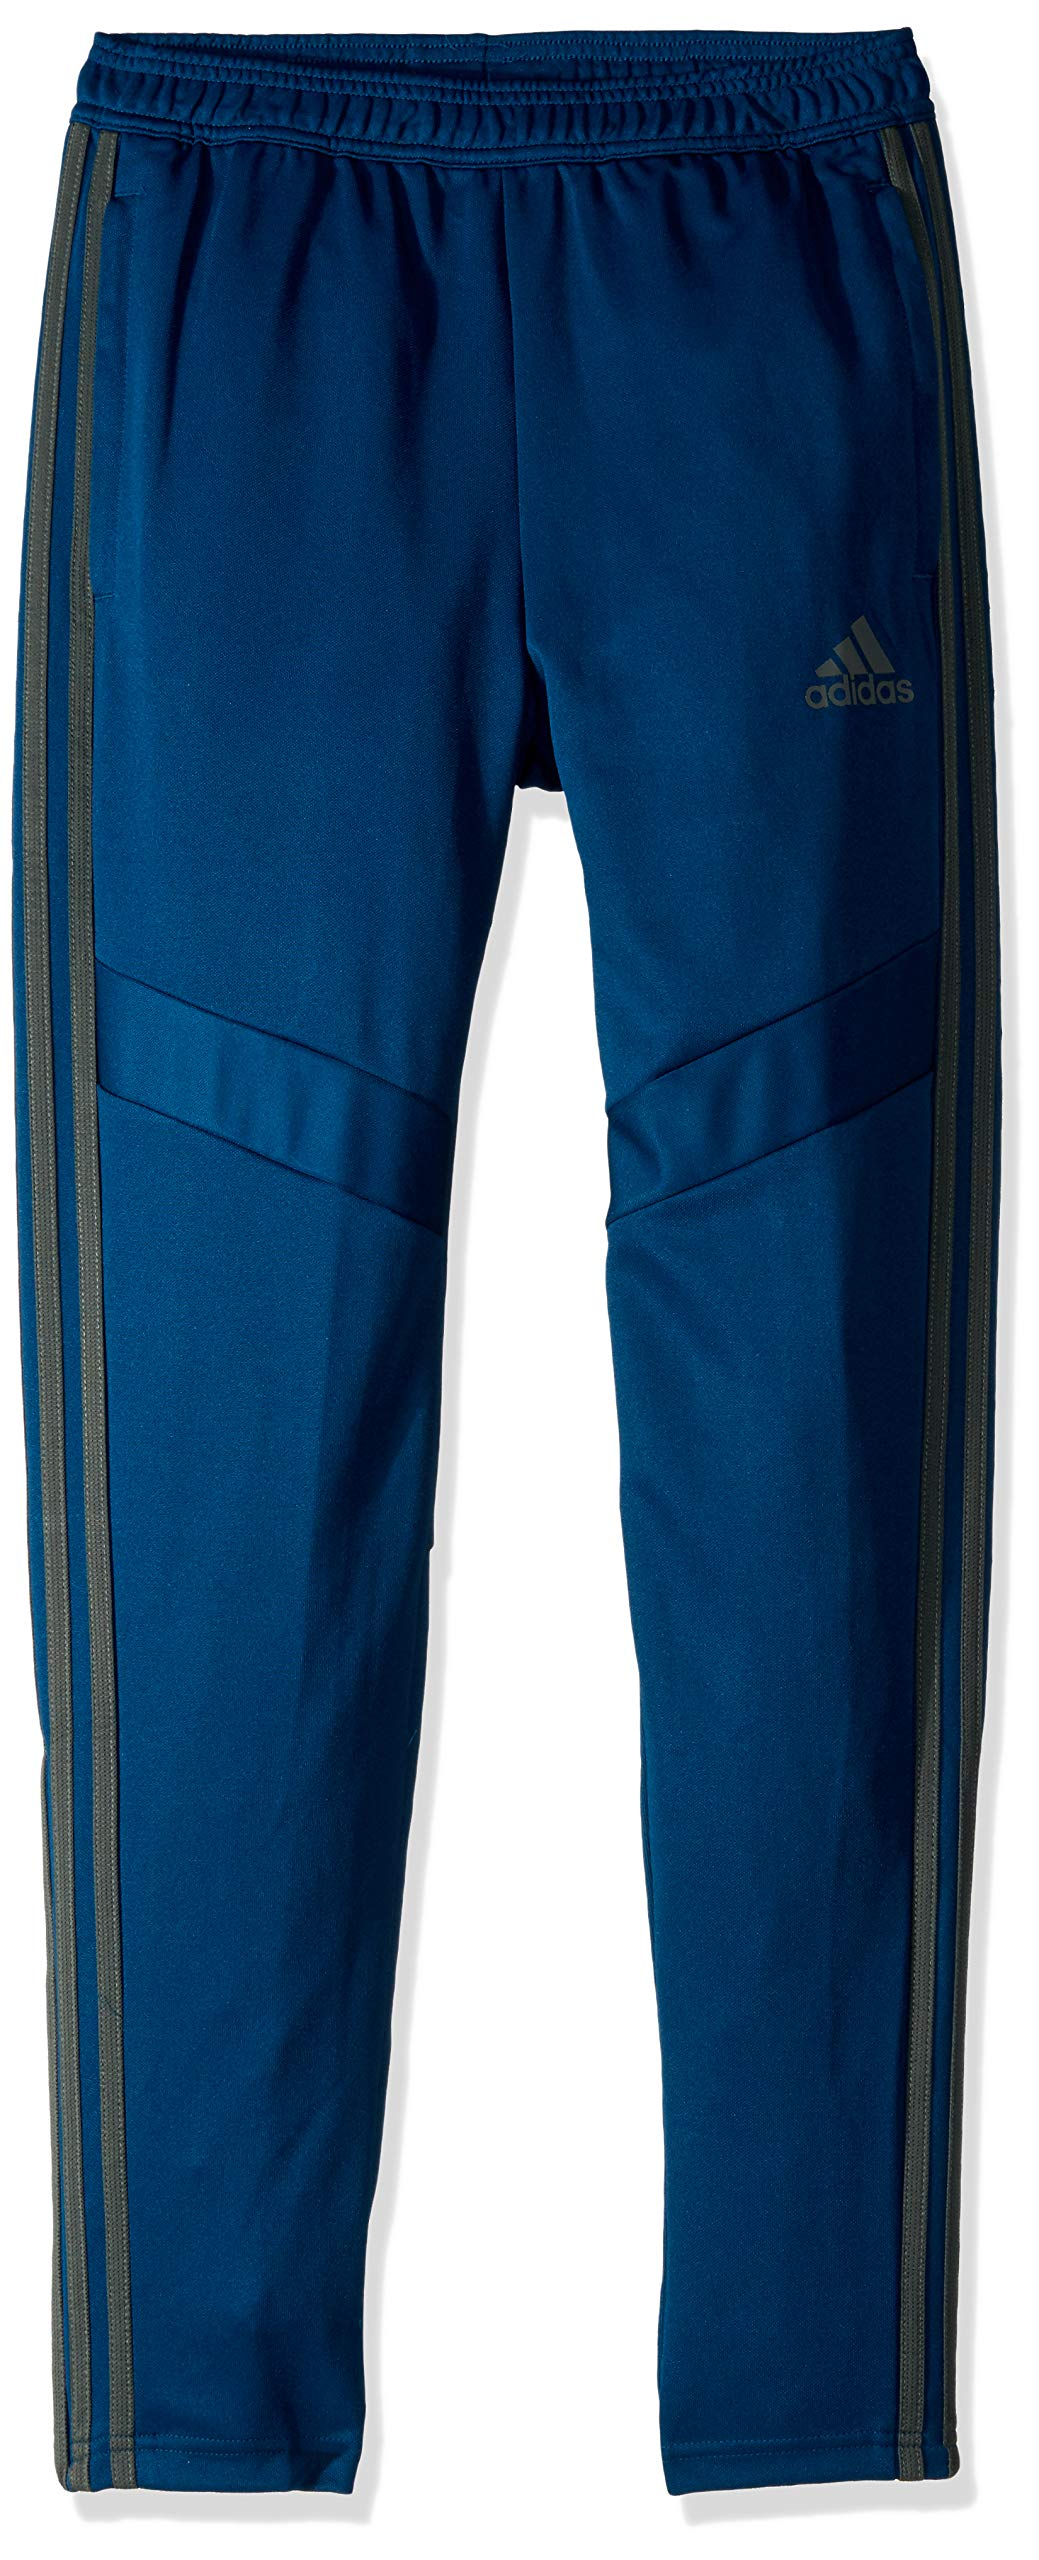 adidas Youth Tiro19 Youth Training Pants, Legend Marine/Legend Ivy, XX-Small